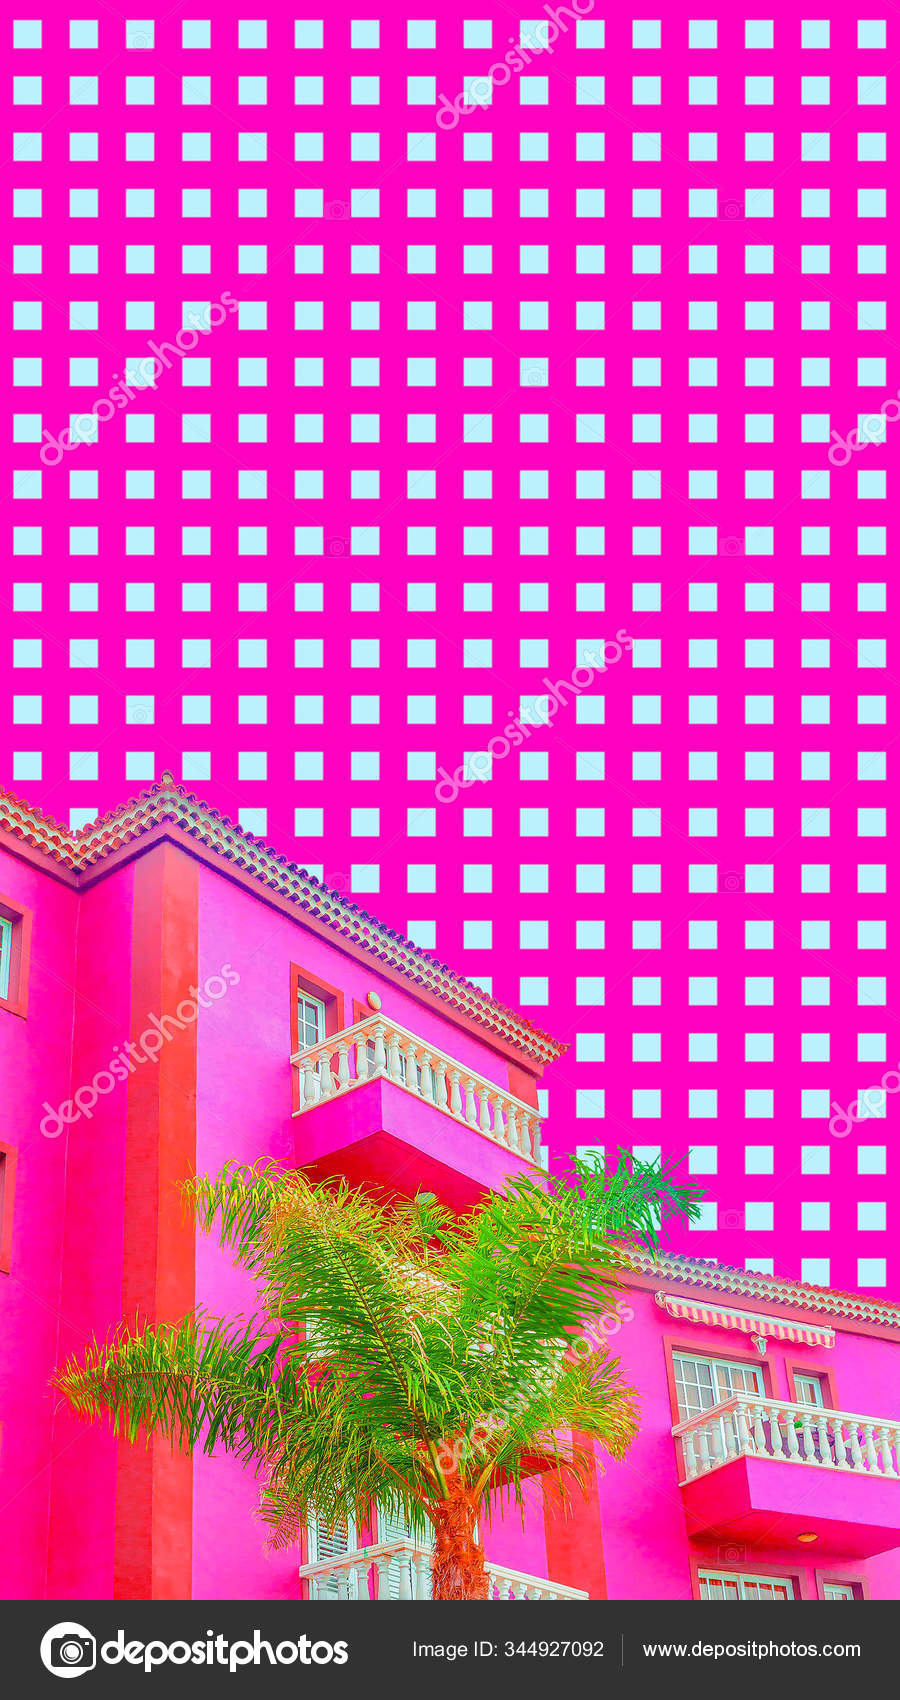 Aesthetic Collage Wallpaper Pink And Tropical Palm Mood Stock